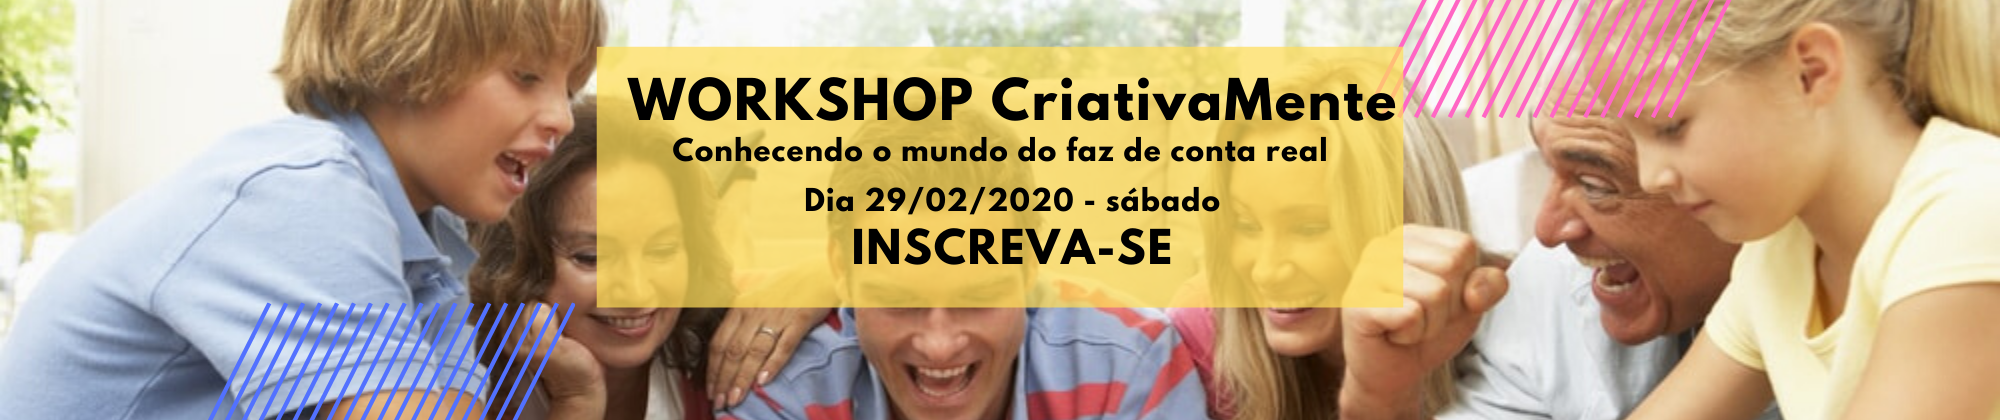 WORKSHOP CriativaMente